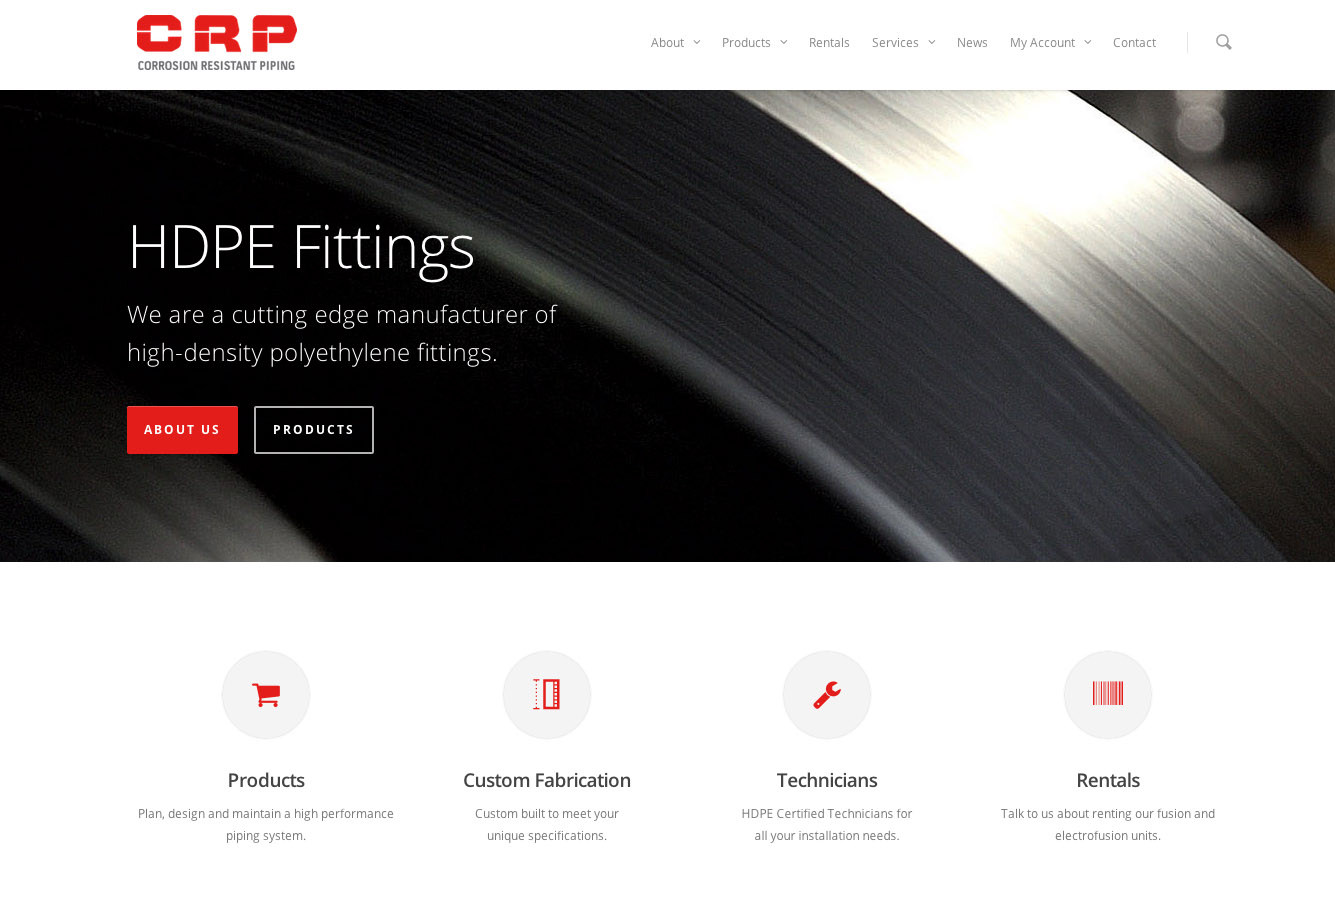 CRP-Edmonton-Alberta-new-website-launch